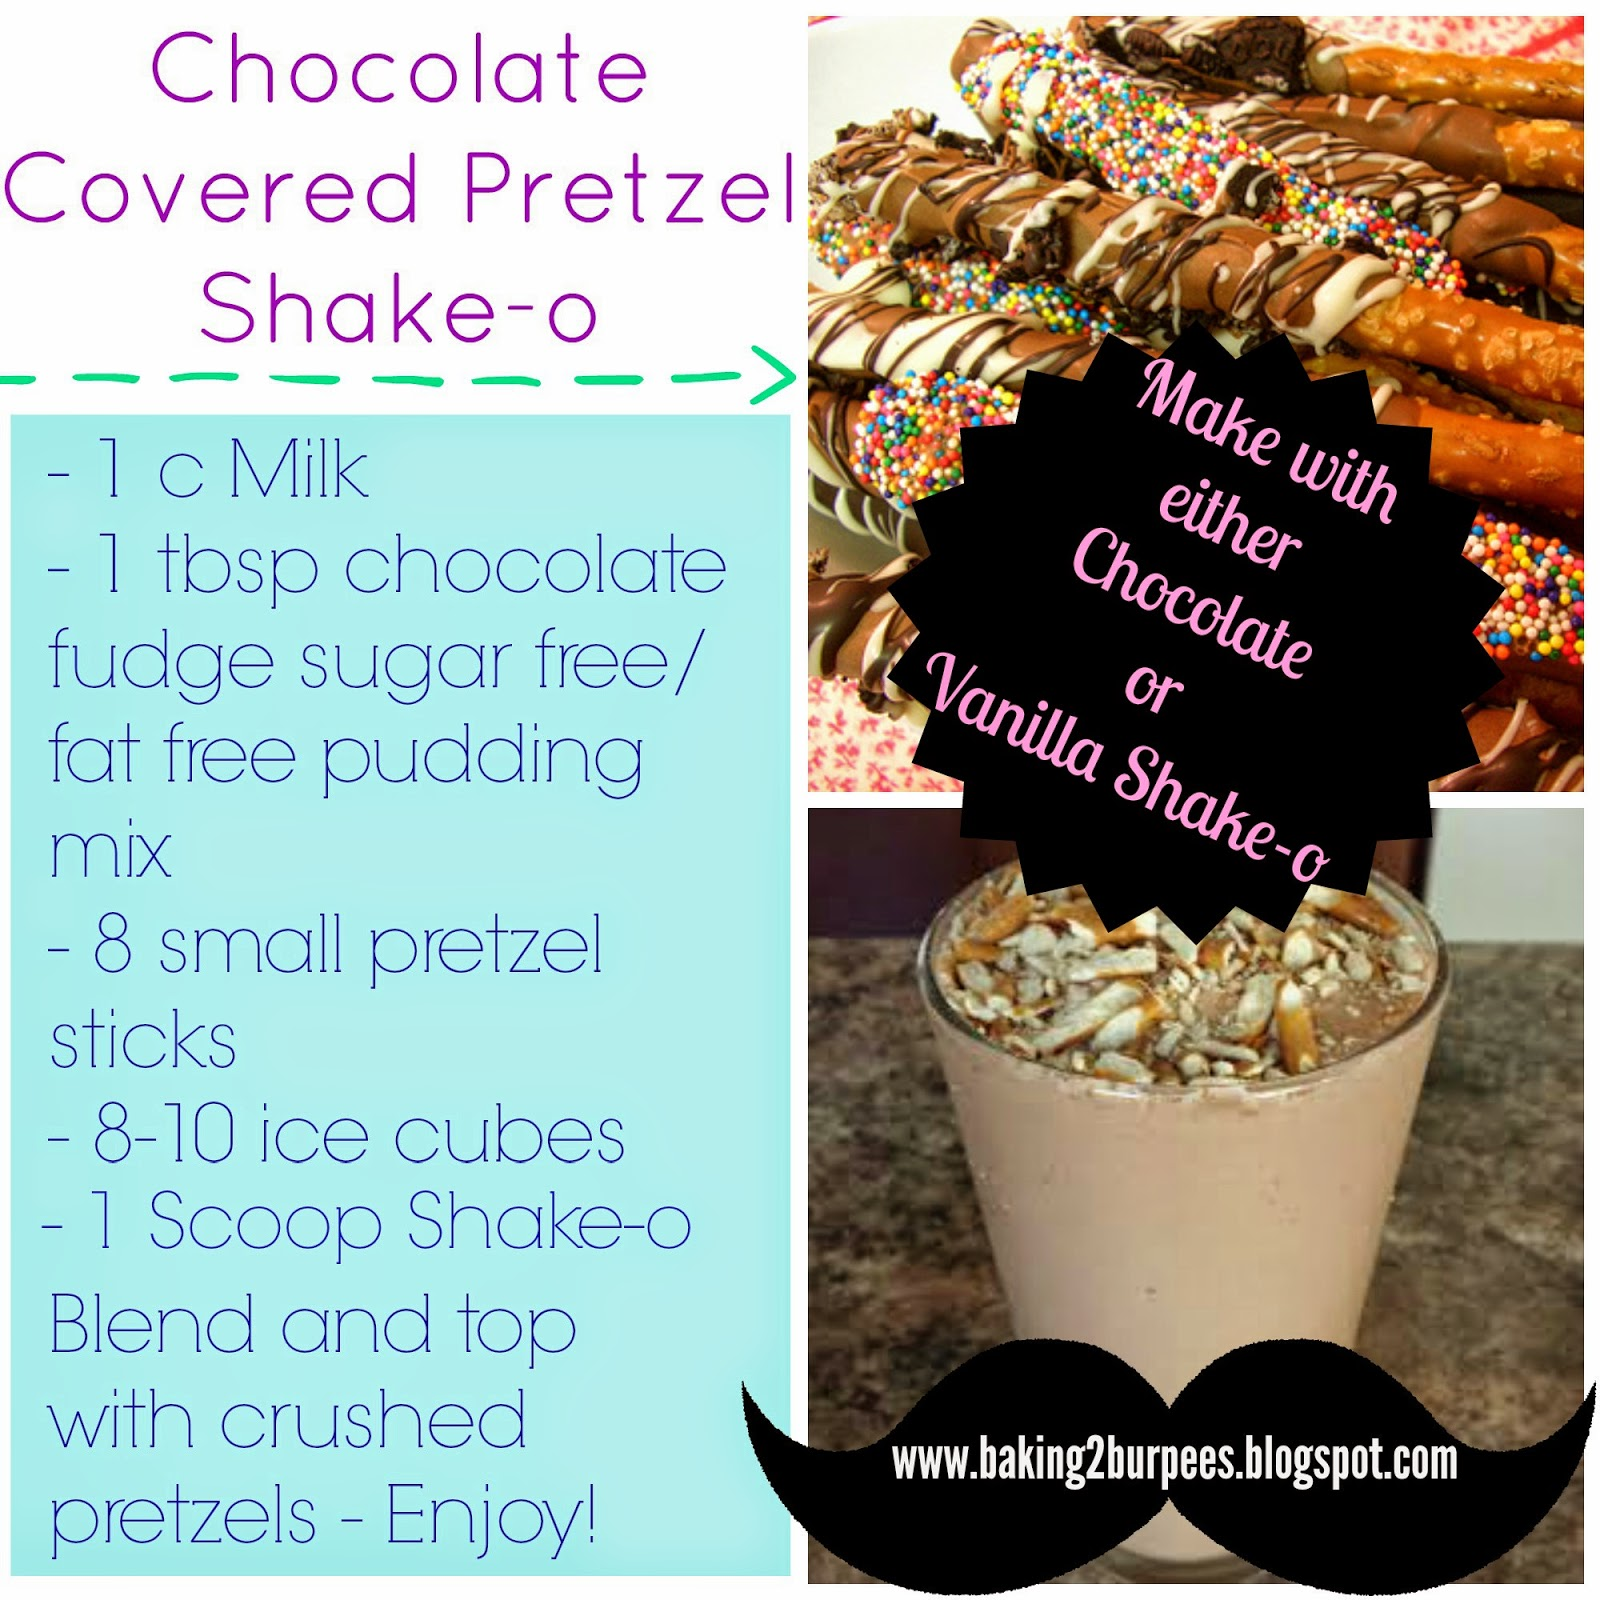 250 calories, chocolate covered pretzel, chocolate shakeology, dramatic results, Erin Traill, fit mom, low calorie dessert, meal replacement, success story, weight loss, weight watchers